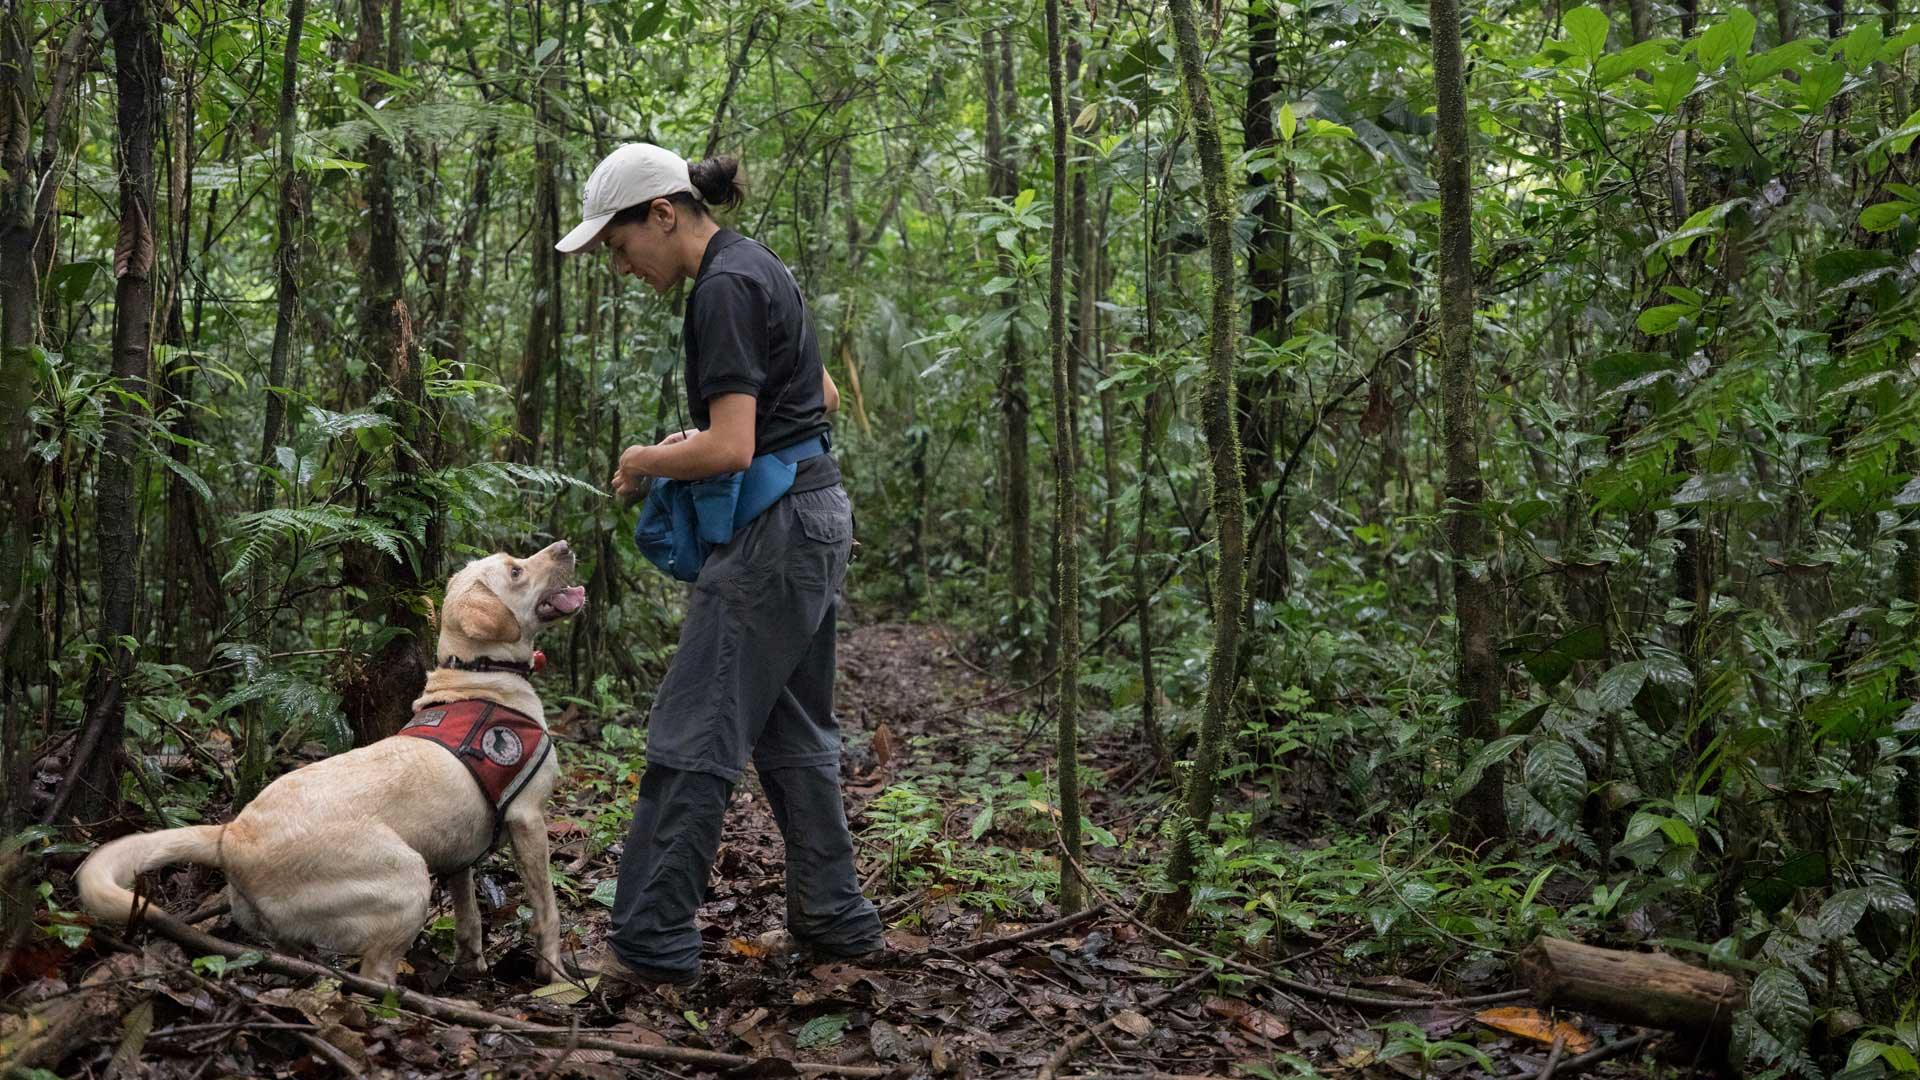 Stephanny Arroyo Arce is the handler for Tigre, a Labrador Retriever who is being trained to detect the feces of jaguars.